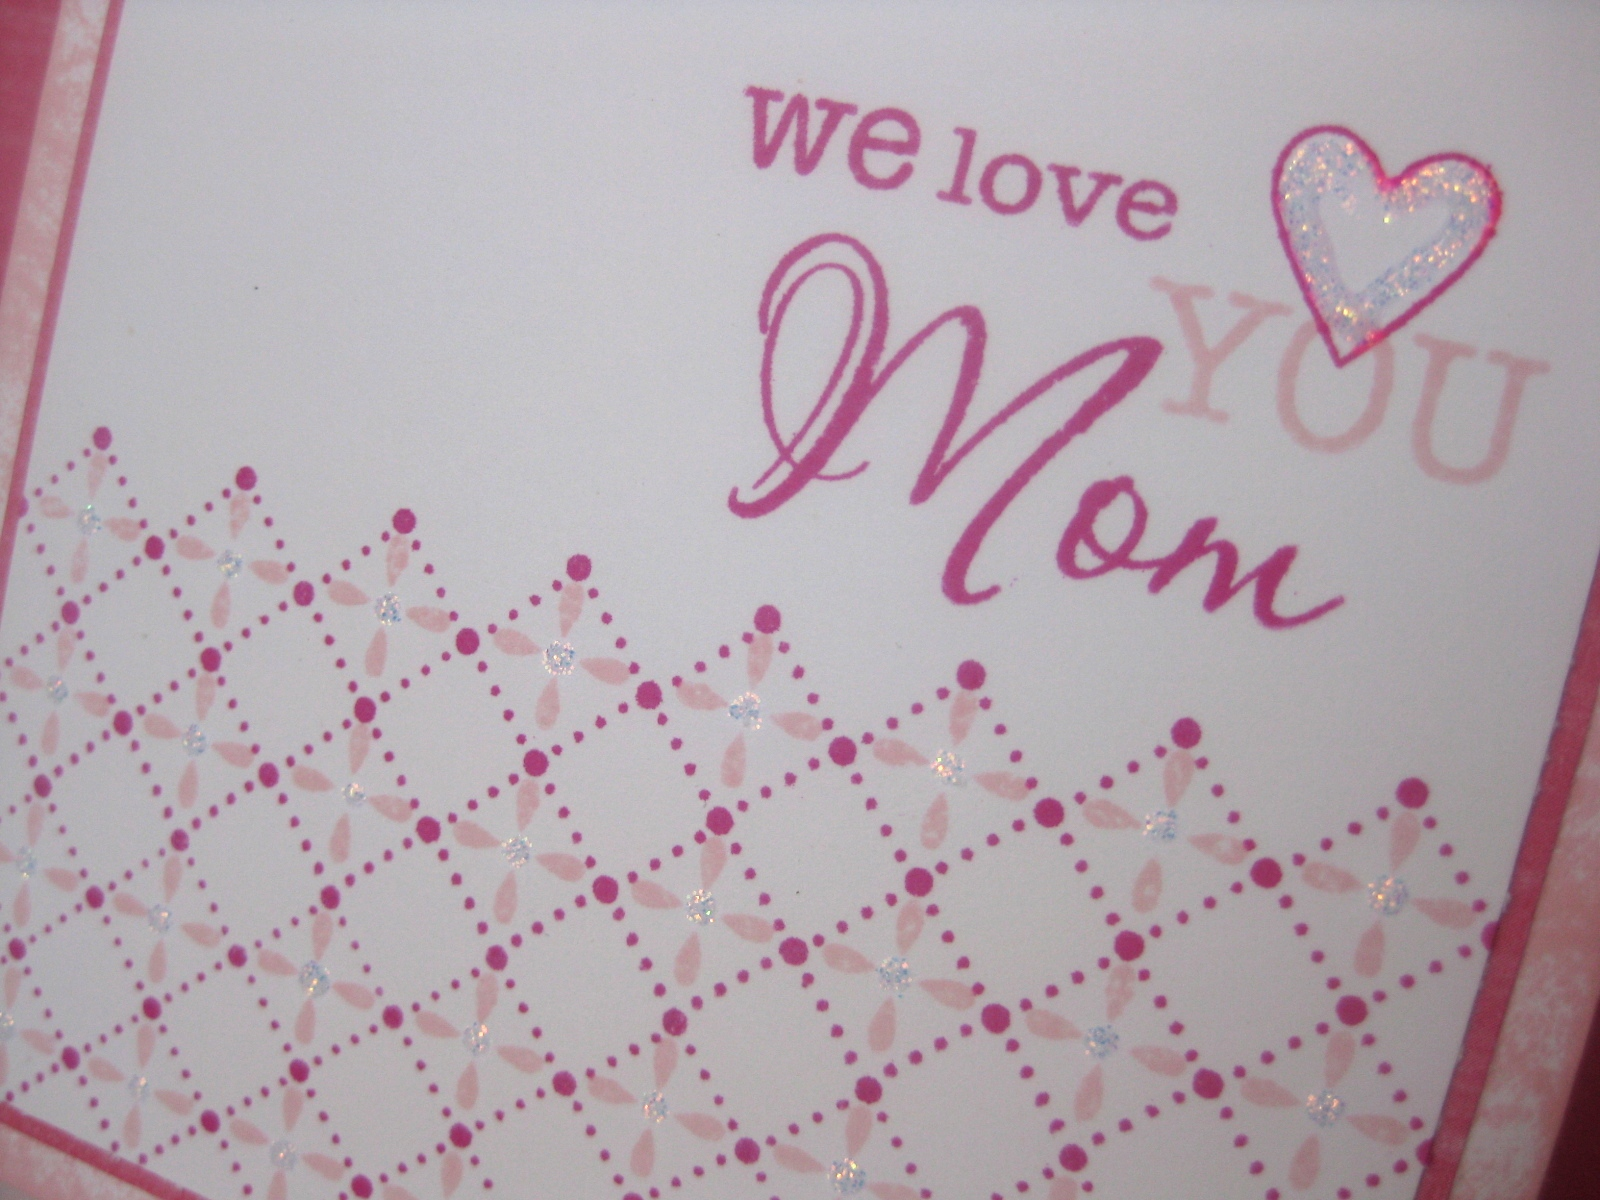 I Love You Mom Wallpapers HD 1600x1200